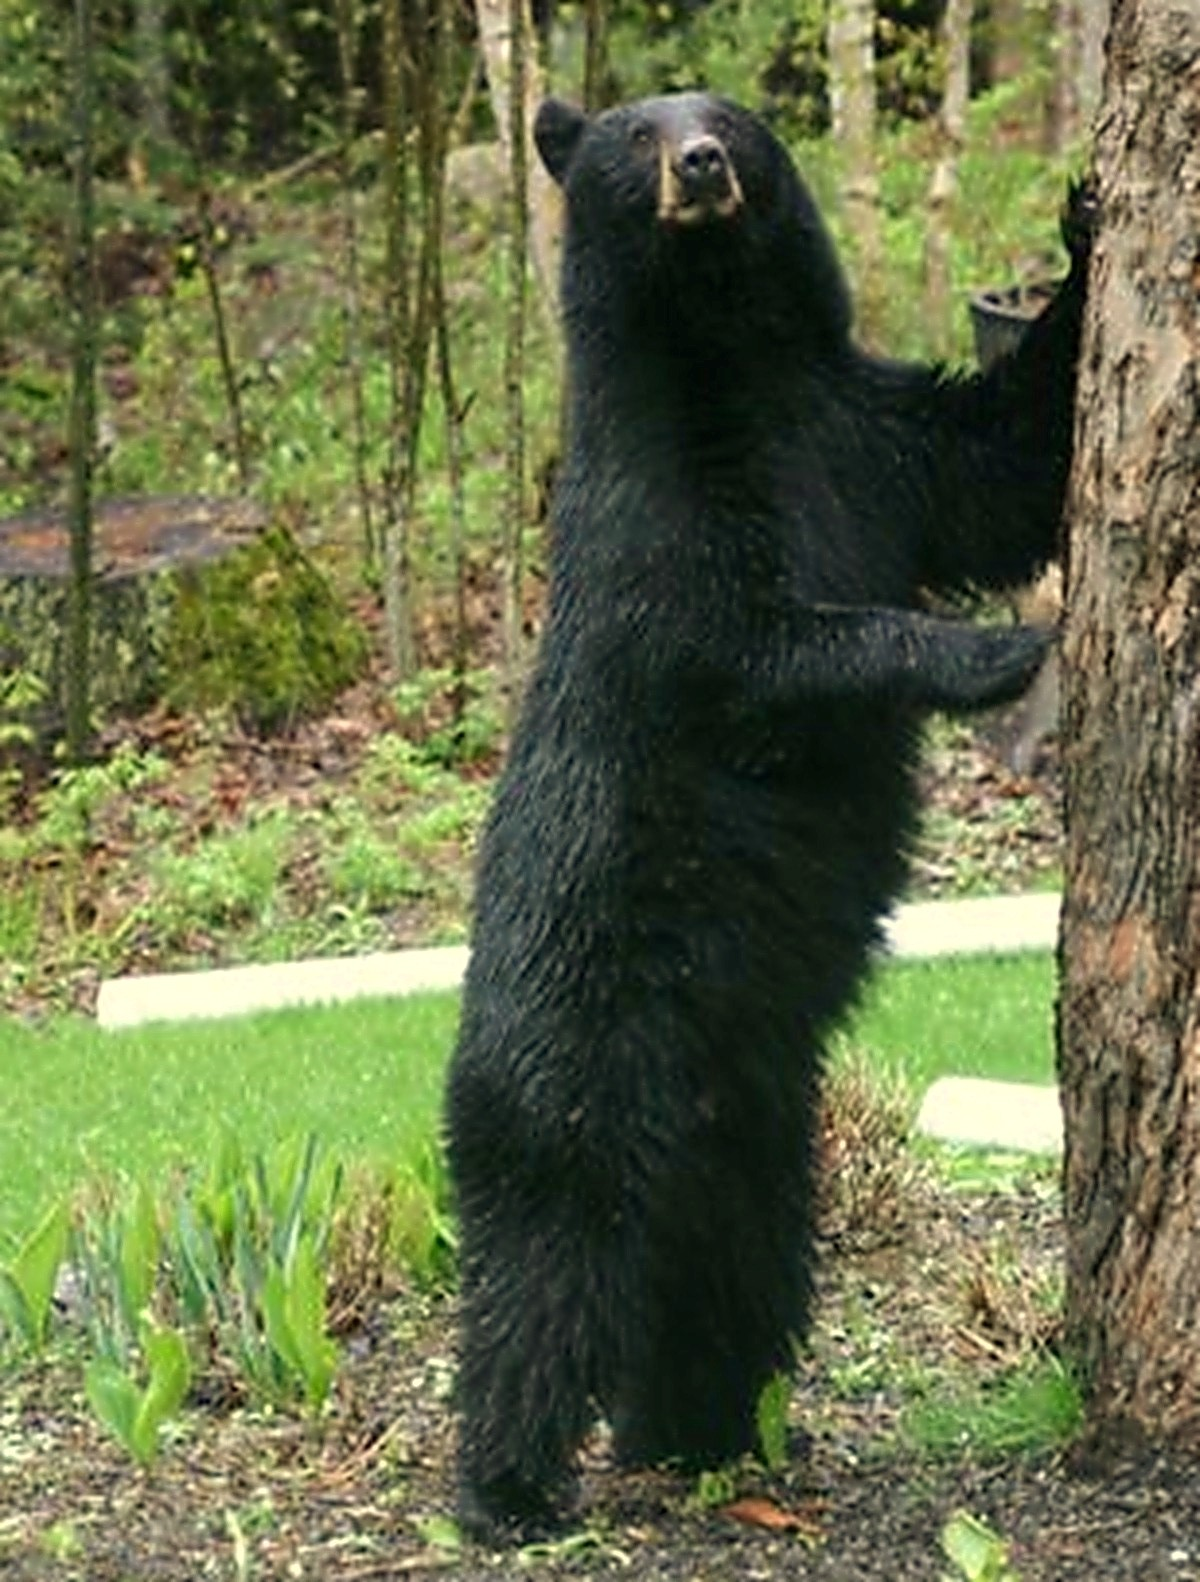 Man Climbs Tree to Avoid Bear, Bear Follows